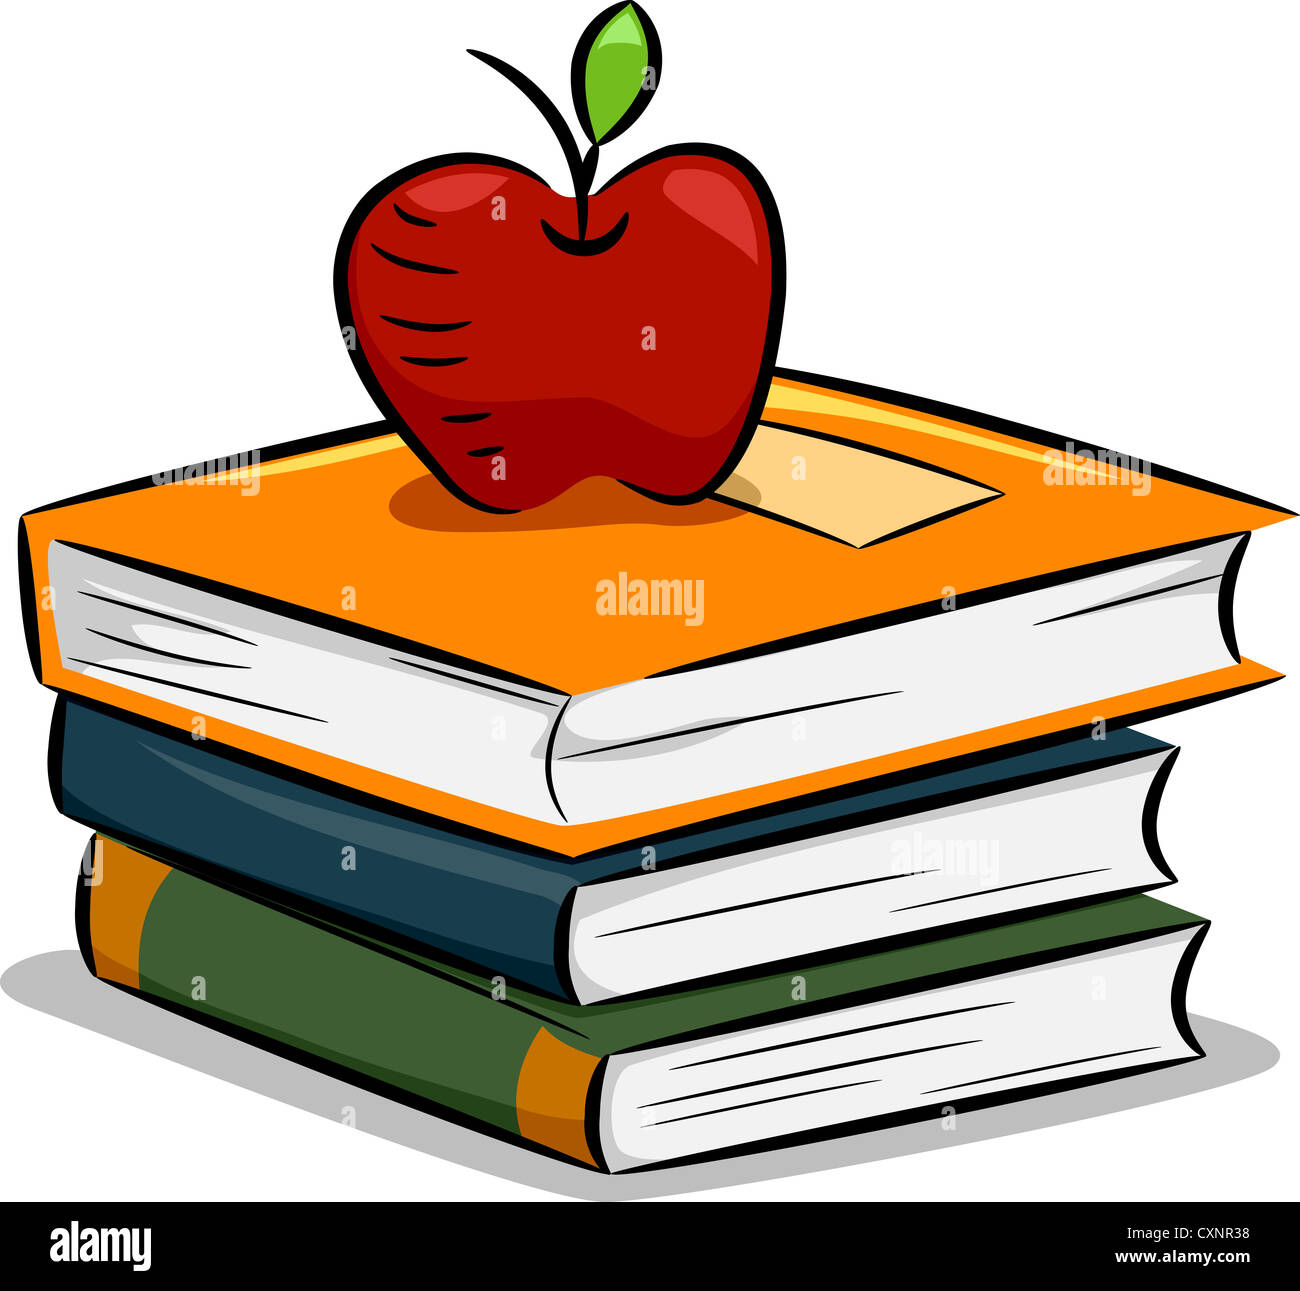 Illustration of an Apple Resting on a Pile of Books Stock Photo